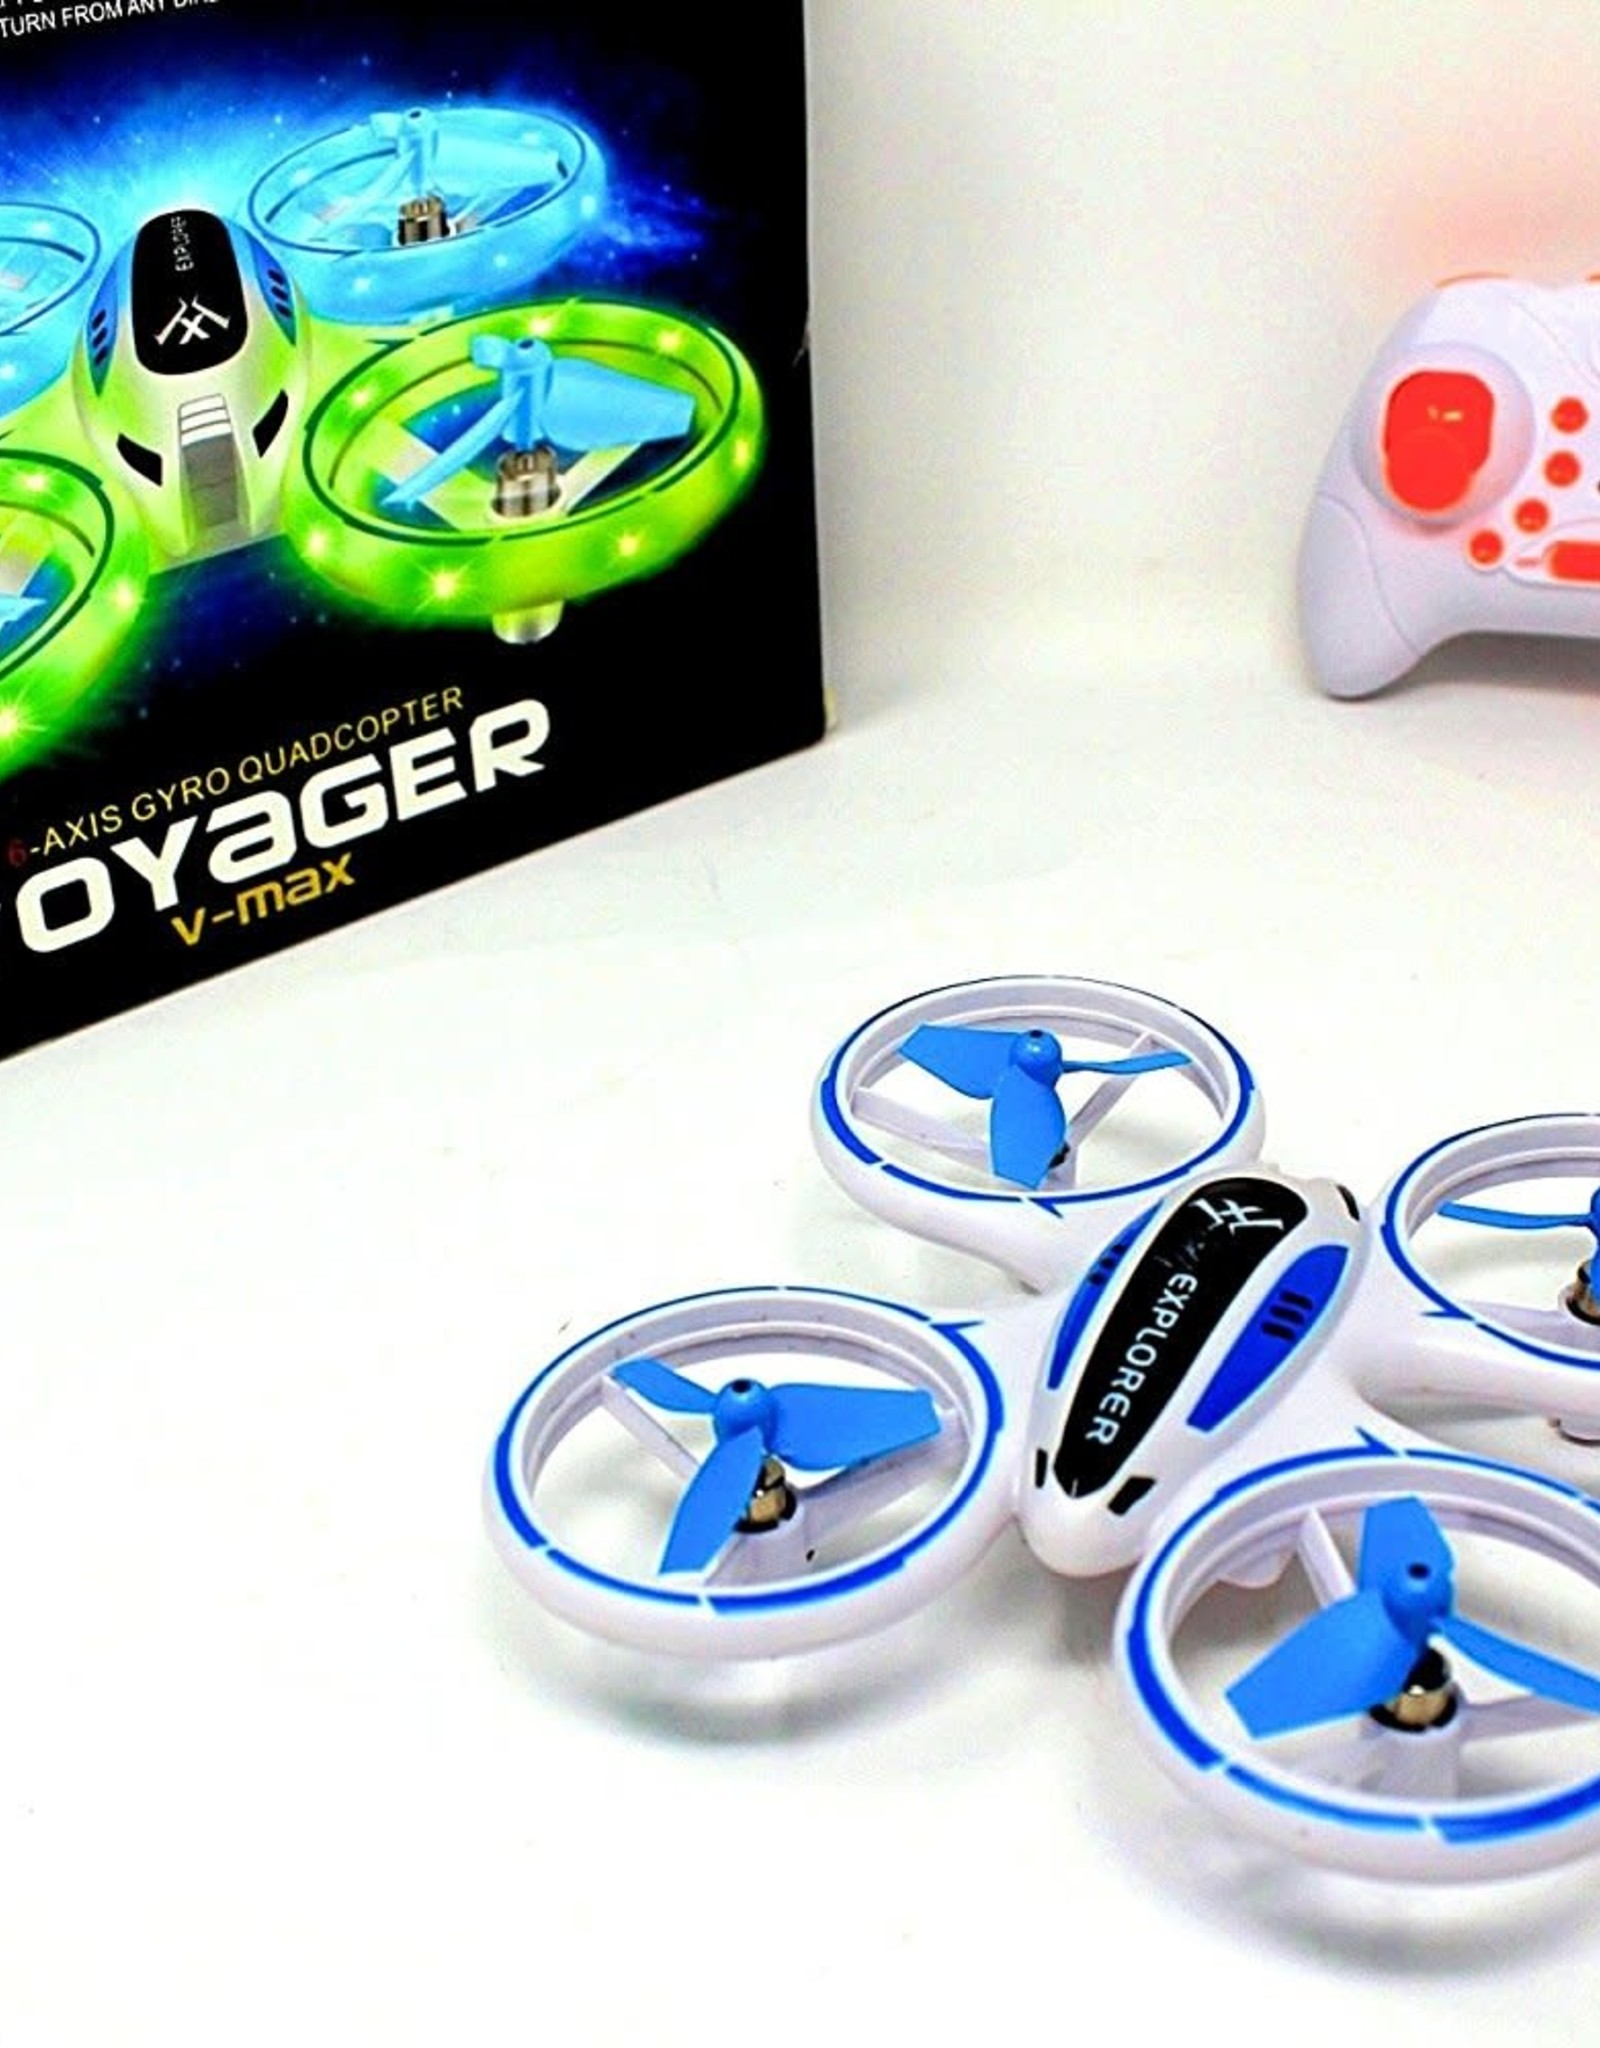 hengXiang HX759 Voyager Quadcopter